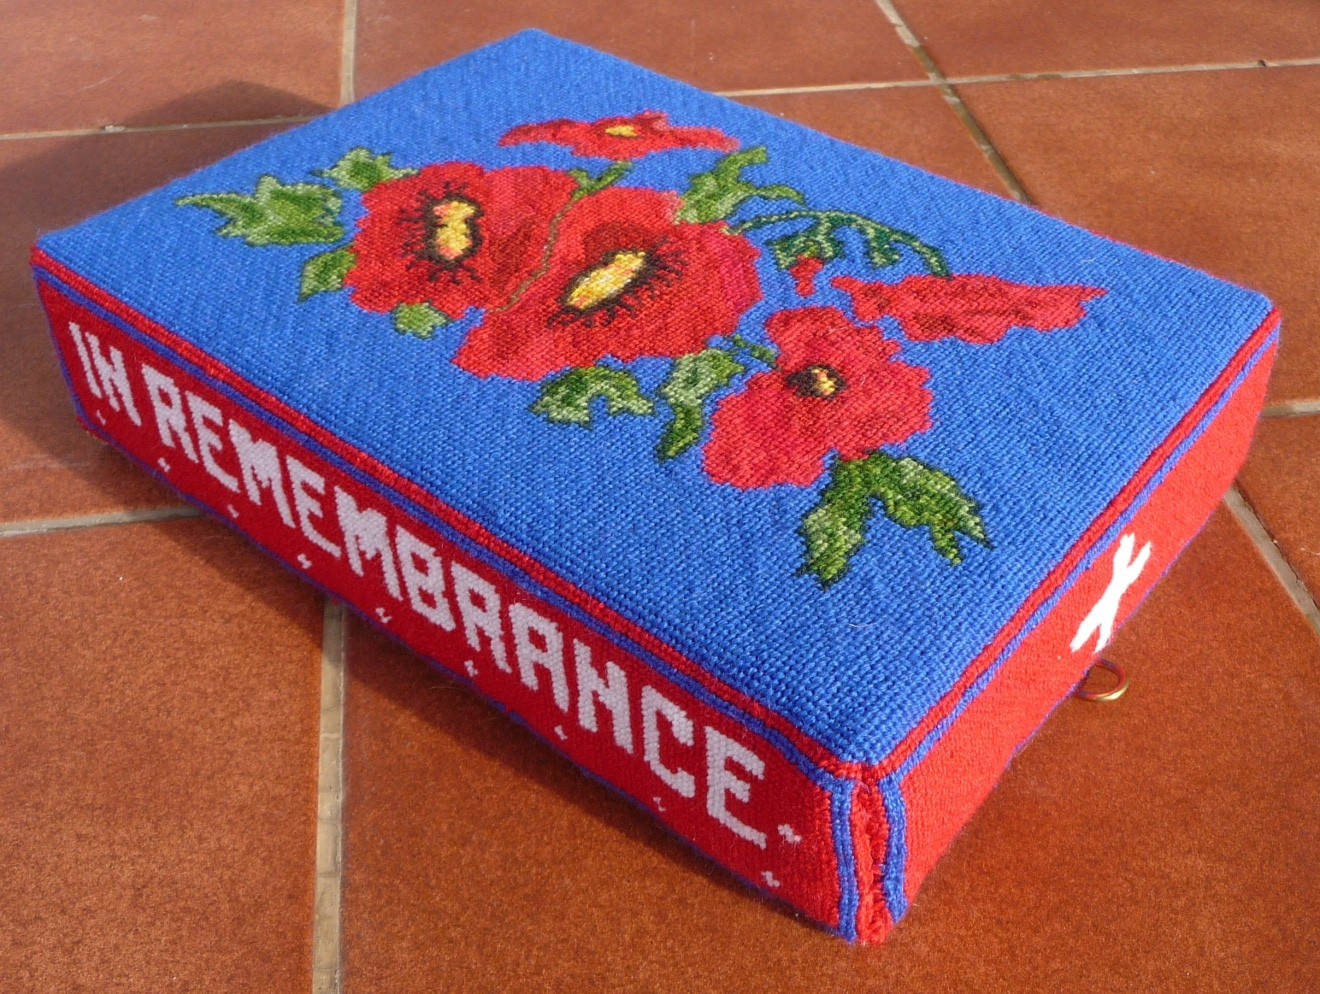 In remembrance – stitched by Patricia Valentine